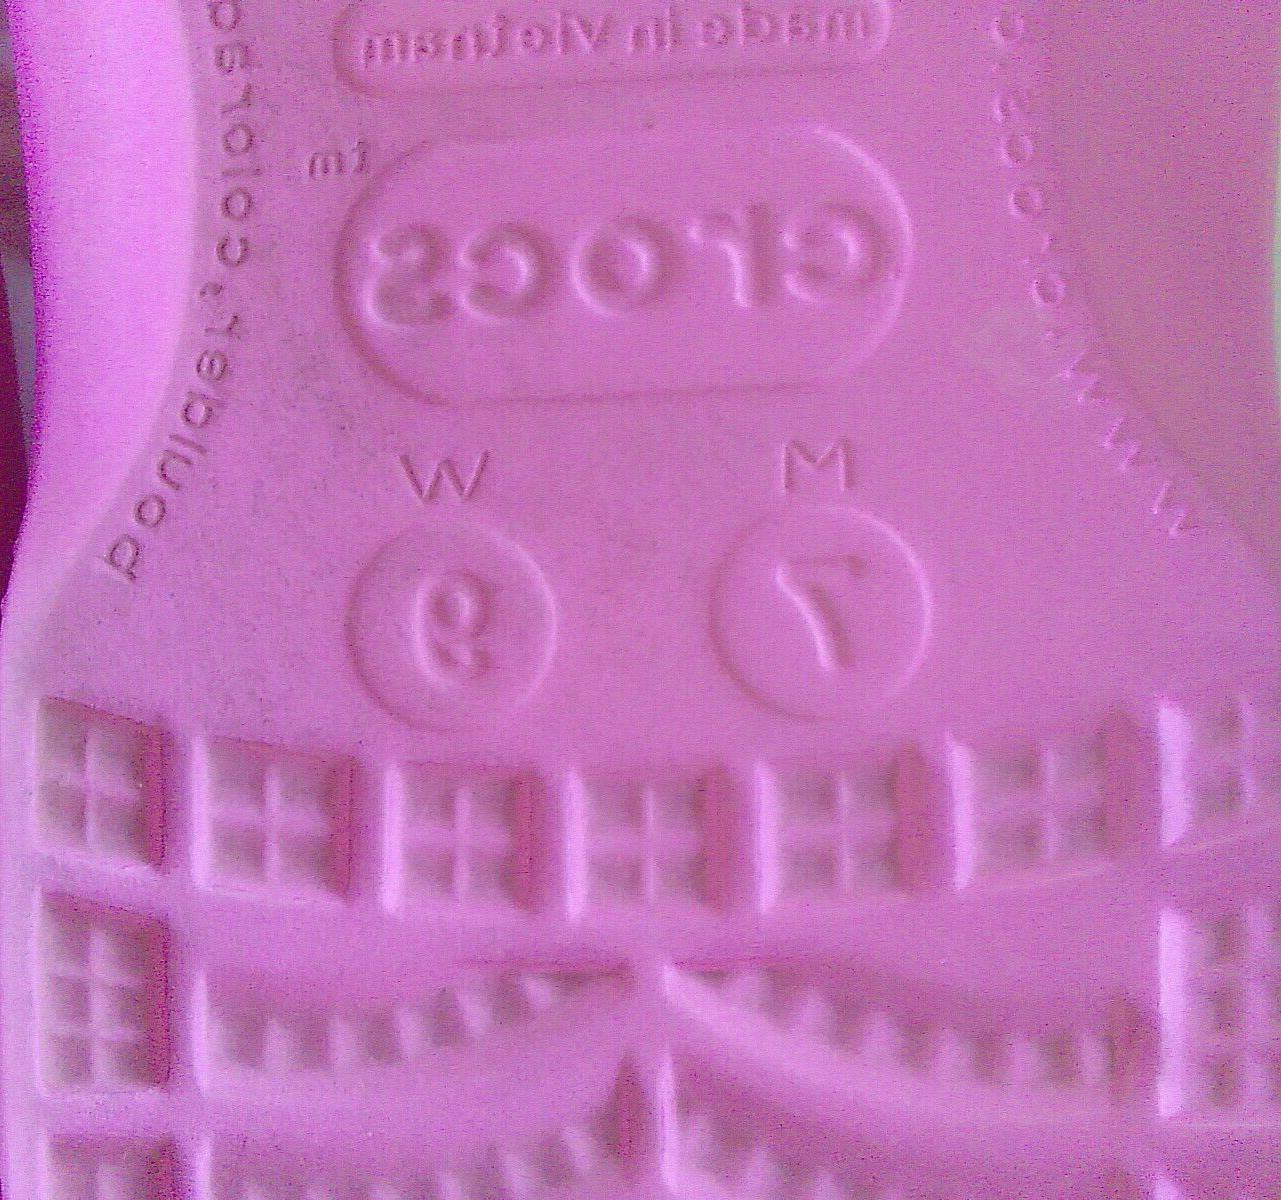 Women's Crocs Flop Sandals Or Water Shoes 9.